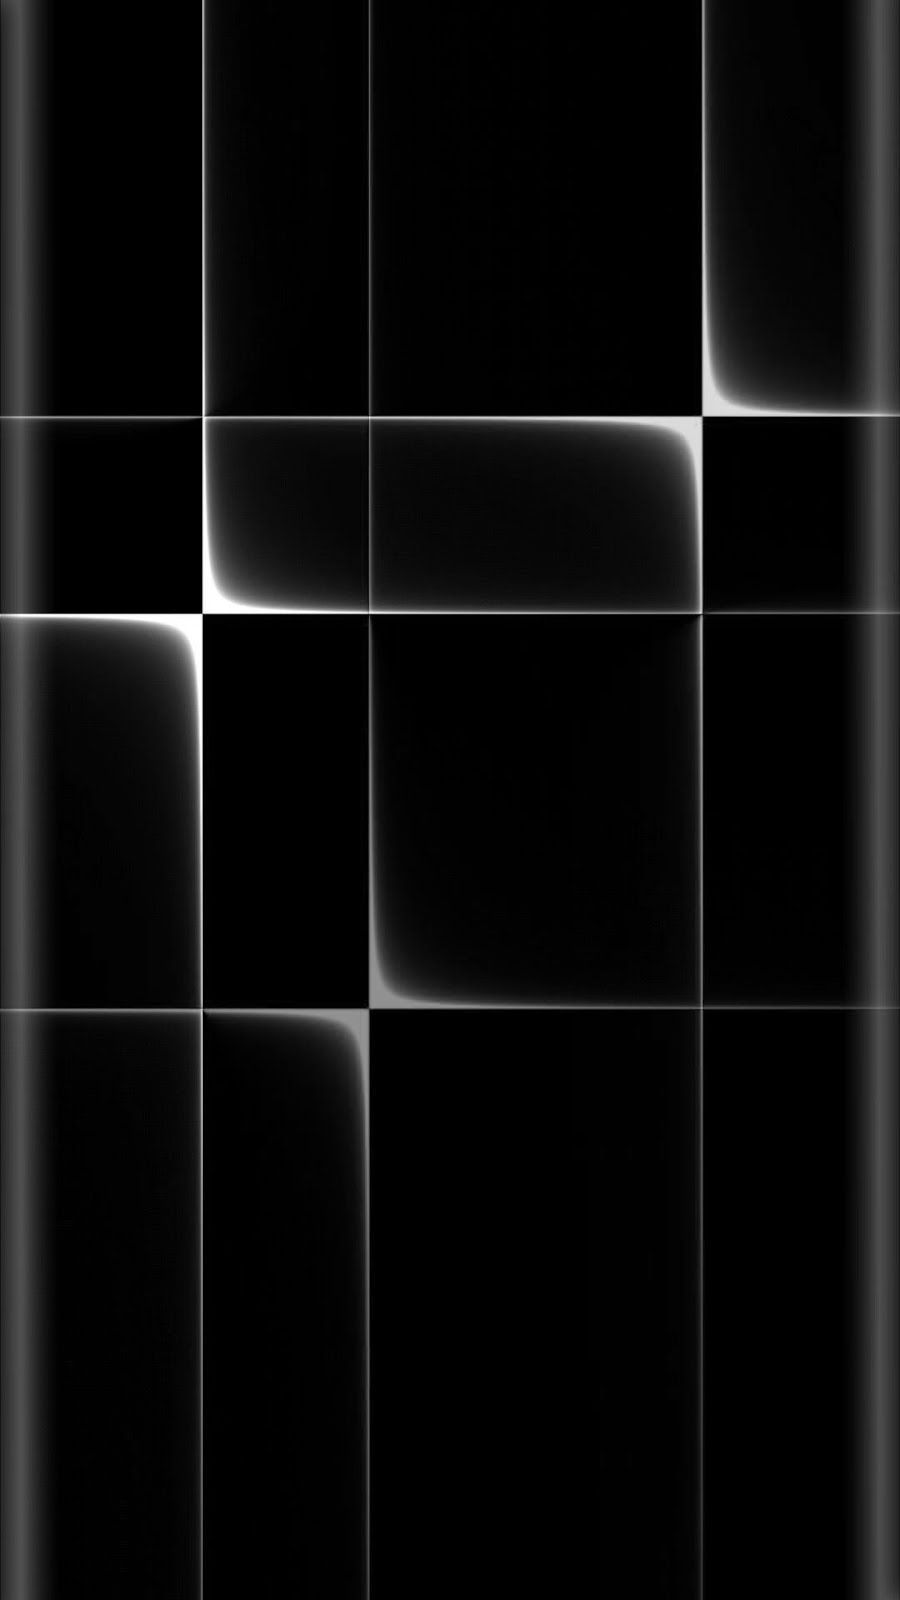 Download 52 Best 3d Dark Wallpapers For Mobile Ashueffects Black Wallpaper For Mobile Dark Wallpaper Android Wallpaper Black A collection of cool 3d wallpaper images